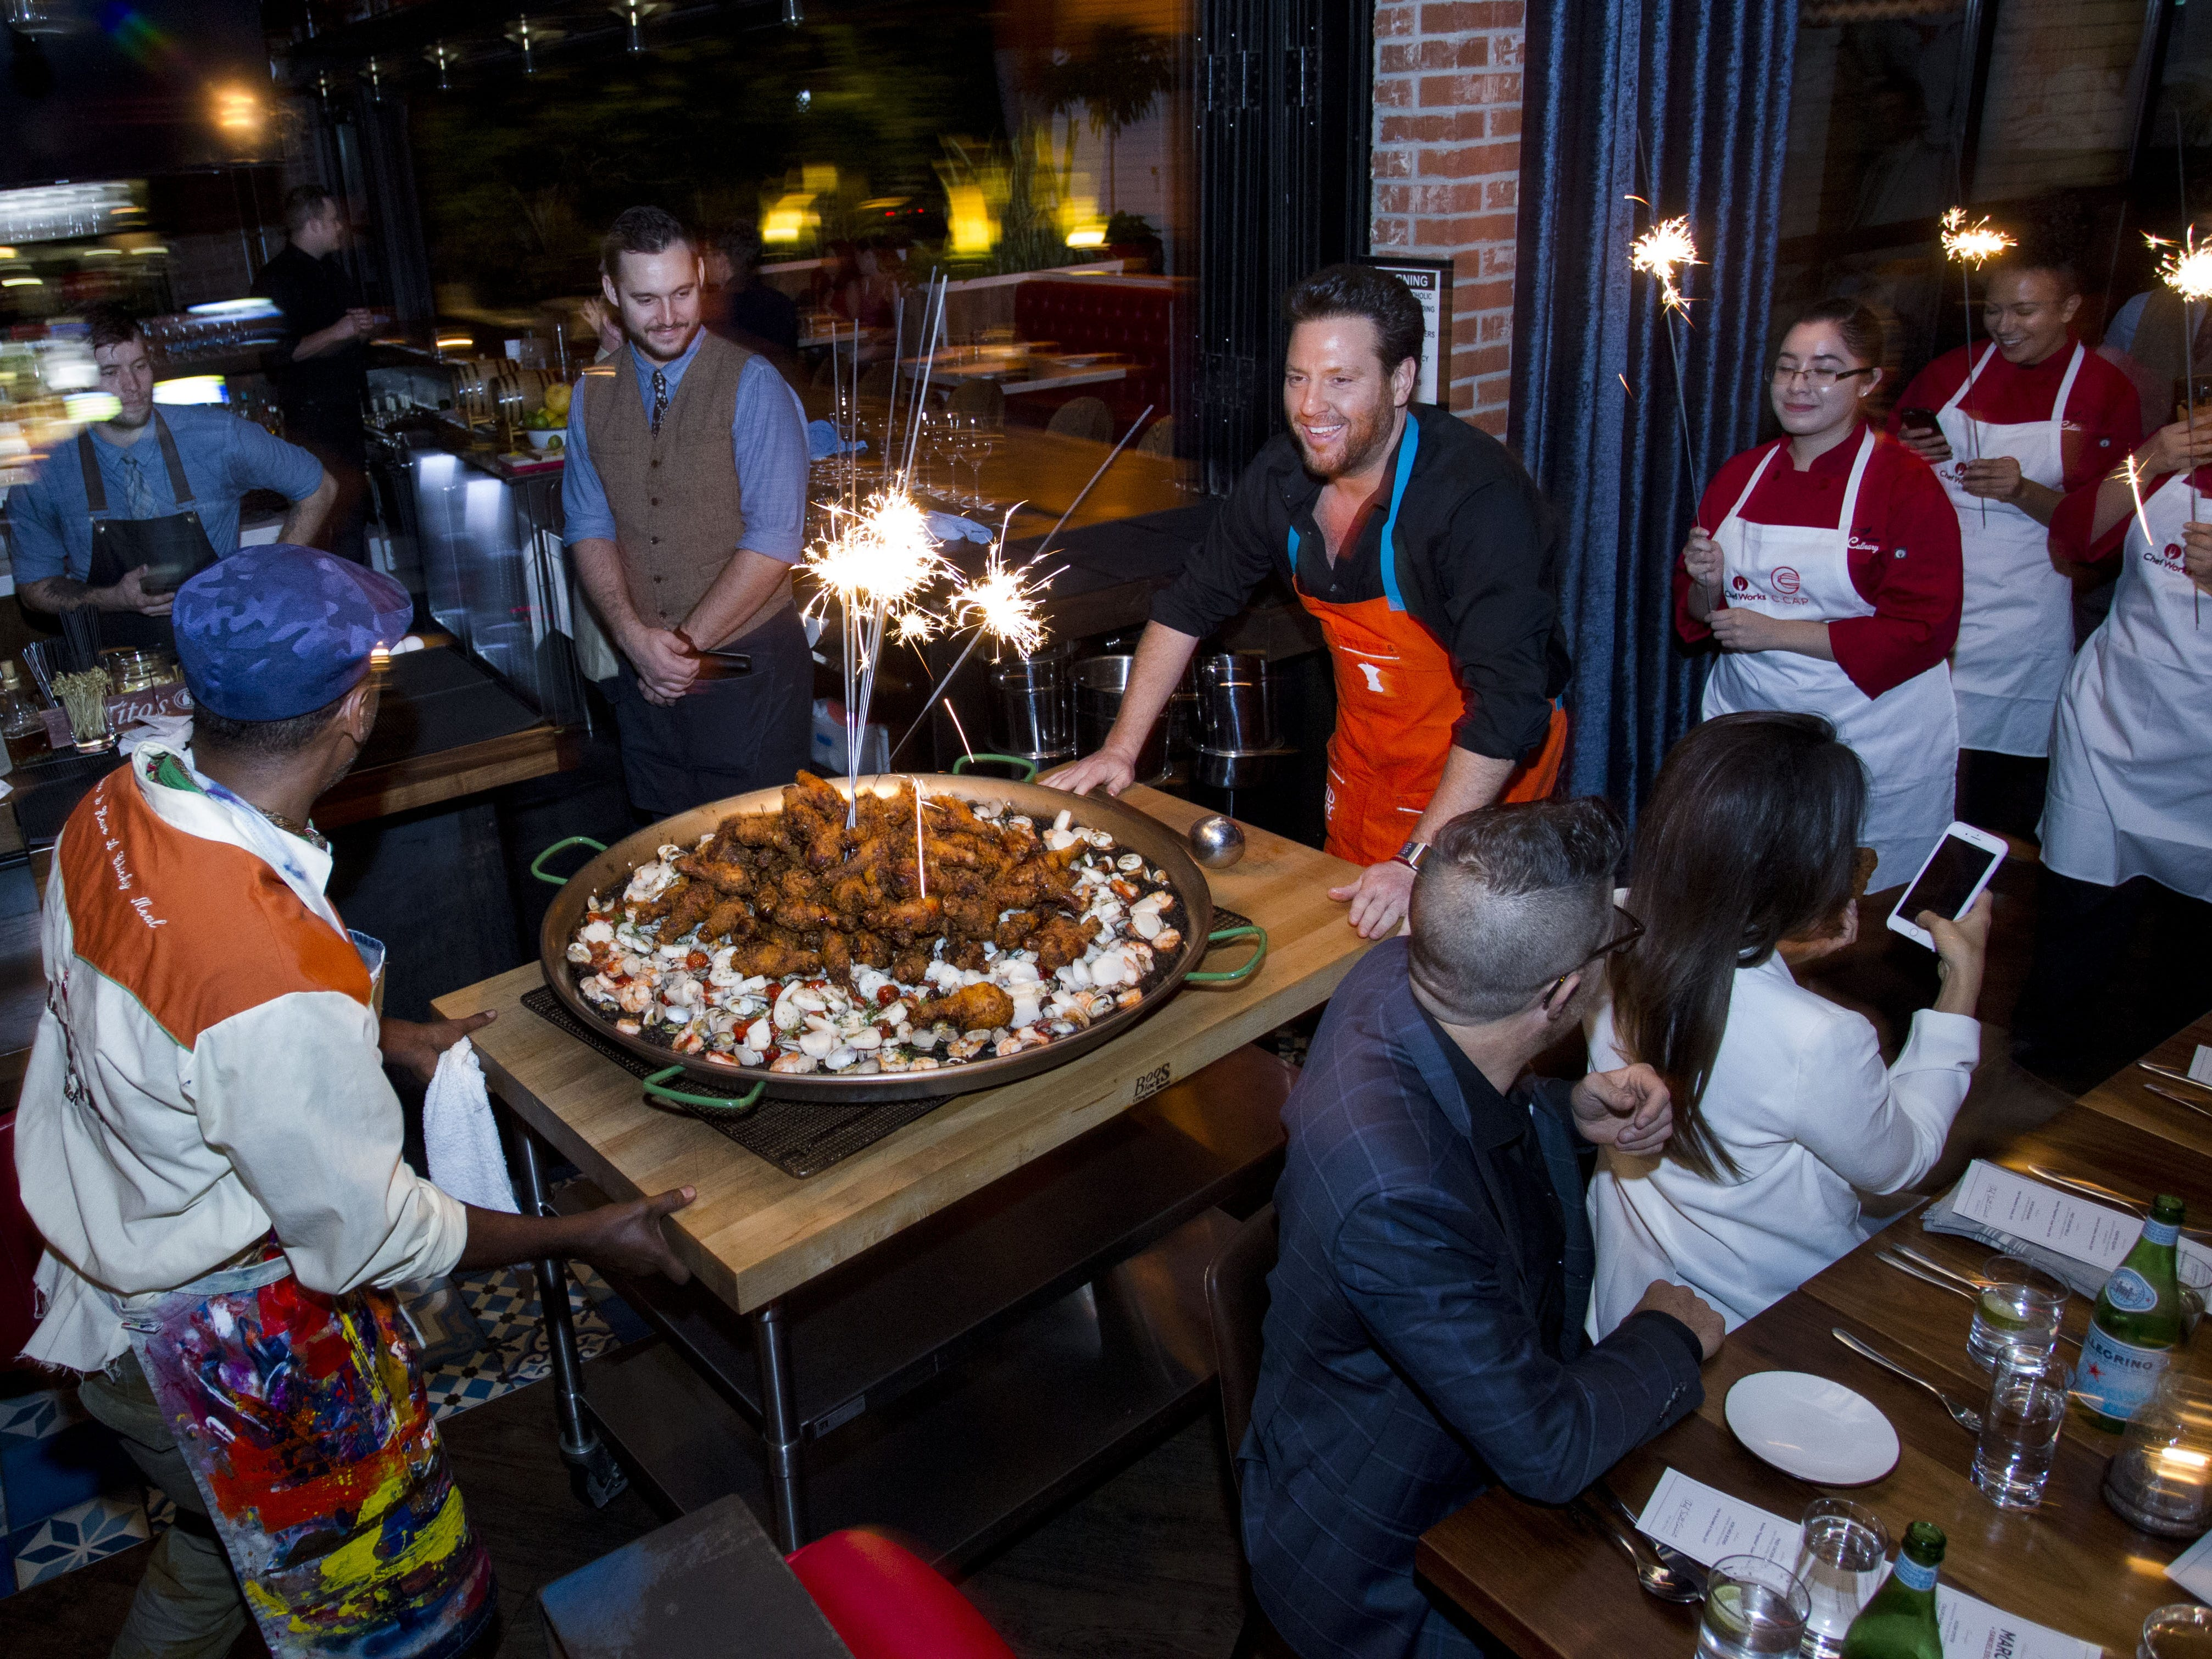 Chefs Scott Conant and Marcus Samuelsson show off their fried chicken paella, the main entree served to guests during the exclusive kickoff dinner event at Mora Italian for azcentral Wine & Food Experience.